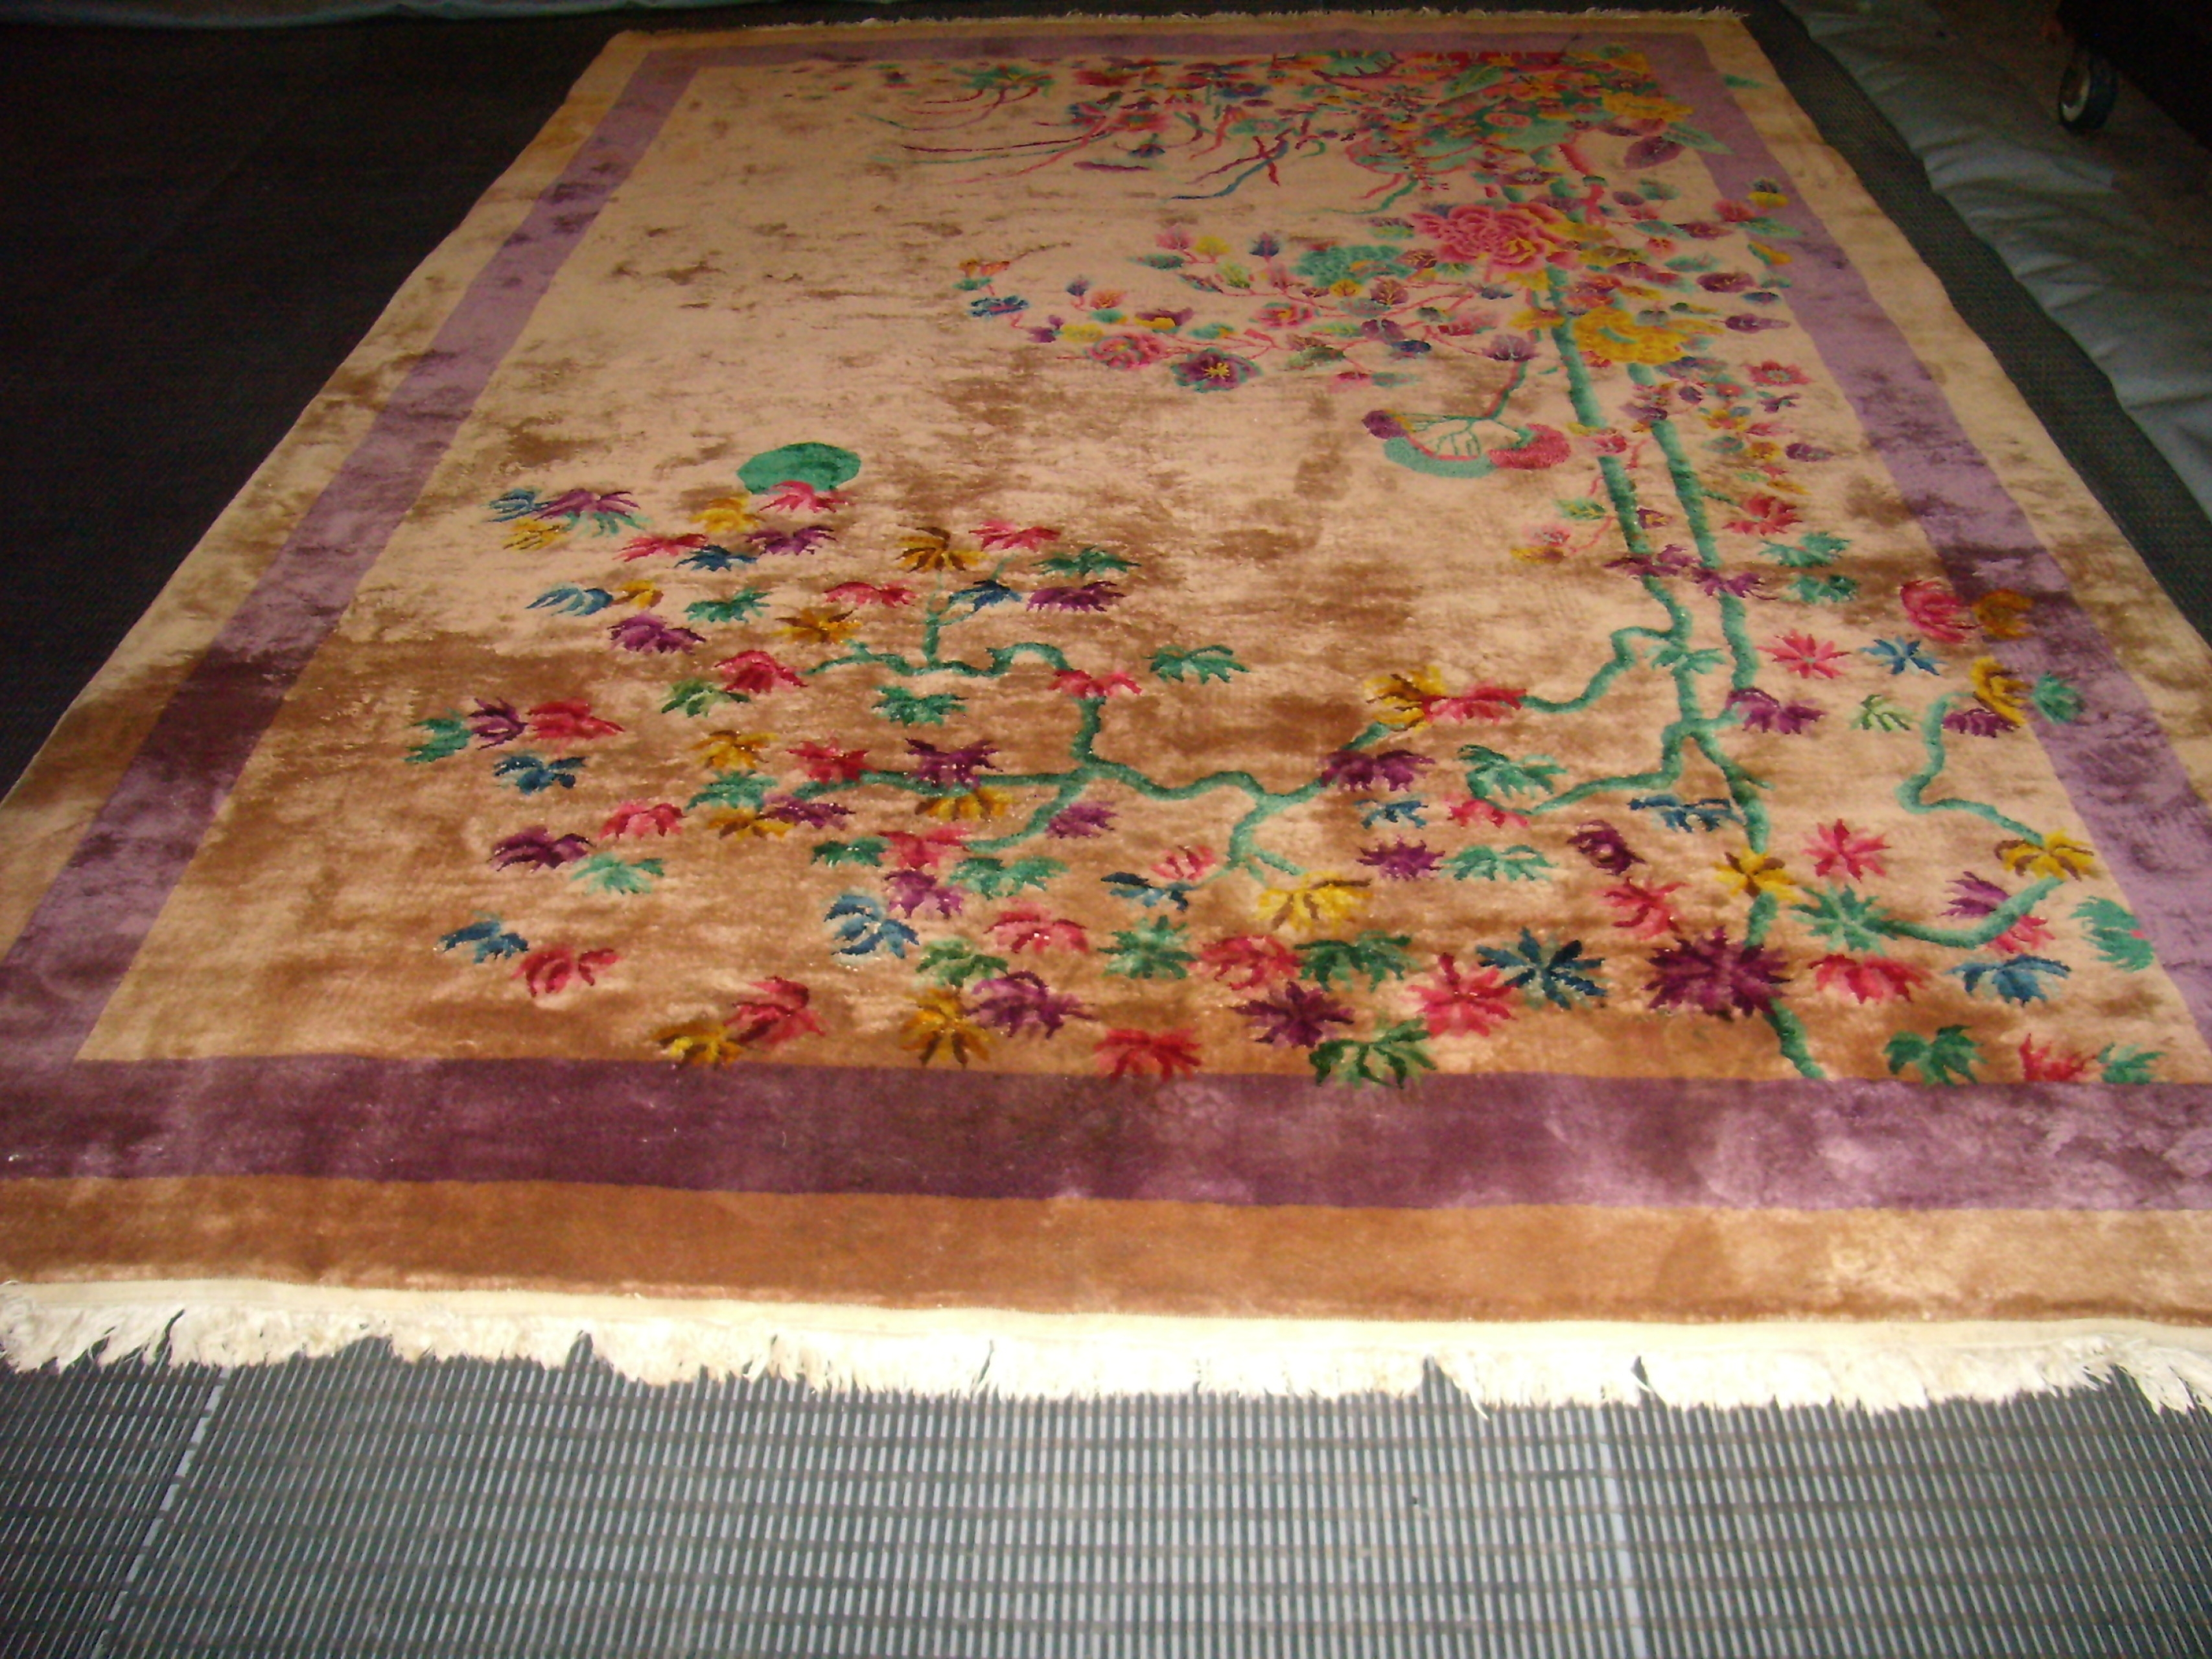 Chinese Hand Knotted Wool Rug 9×12 Intended For Knotted Wool Rugs (Image 5 of 15)